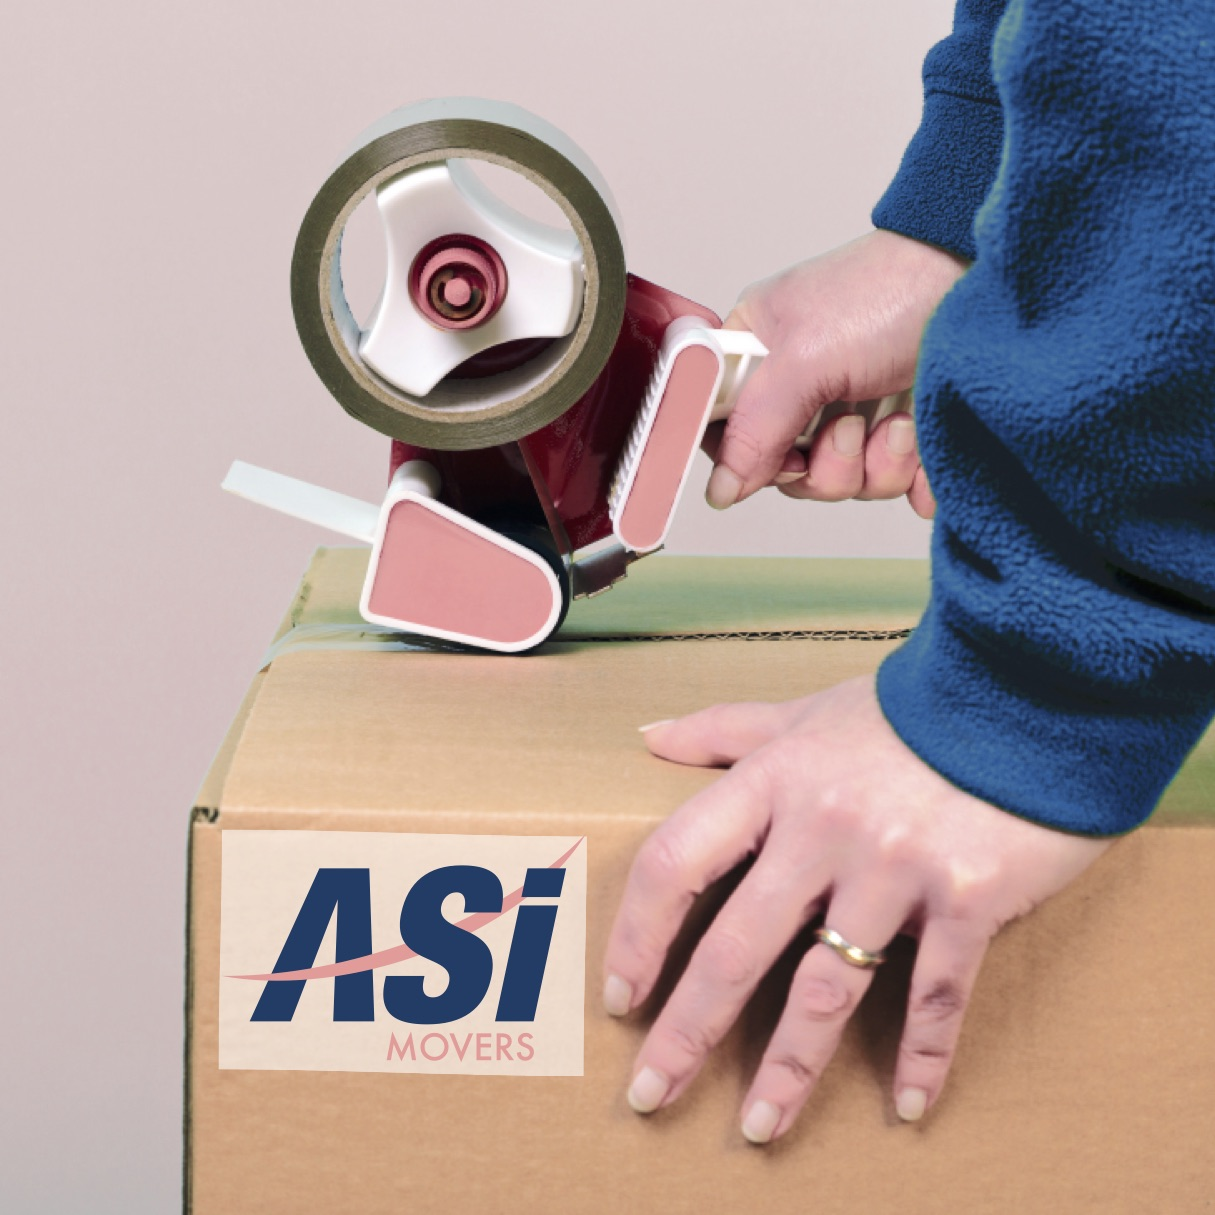 ASI MOVERS Boxes